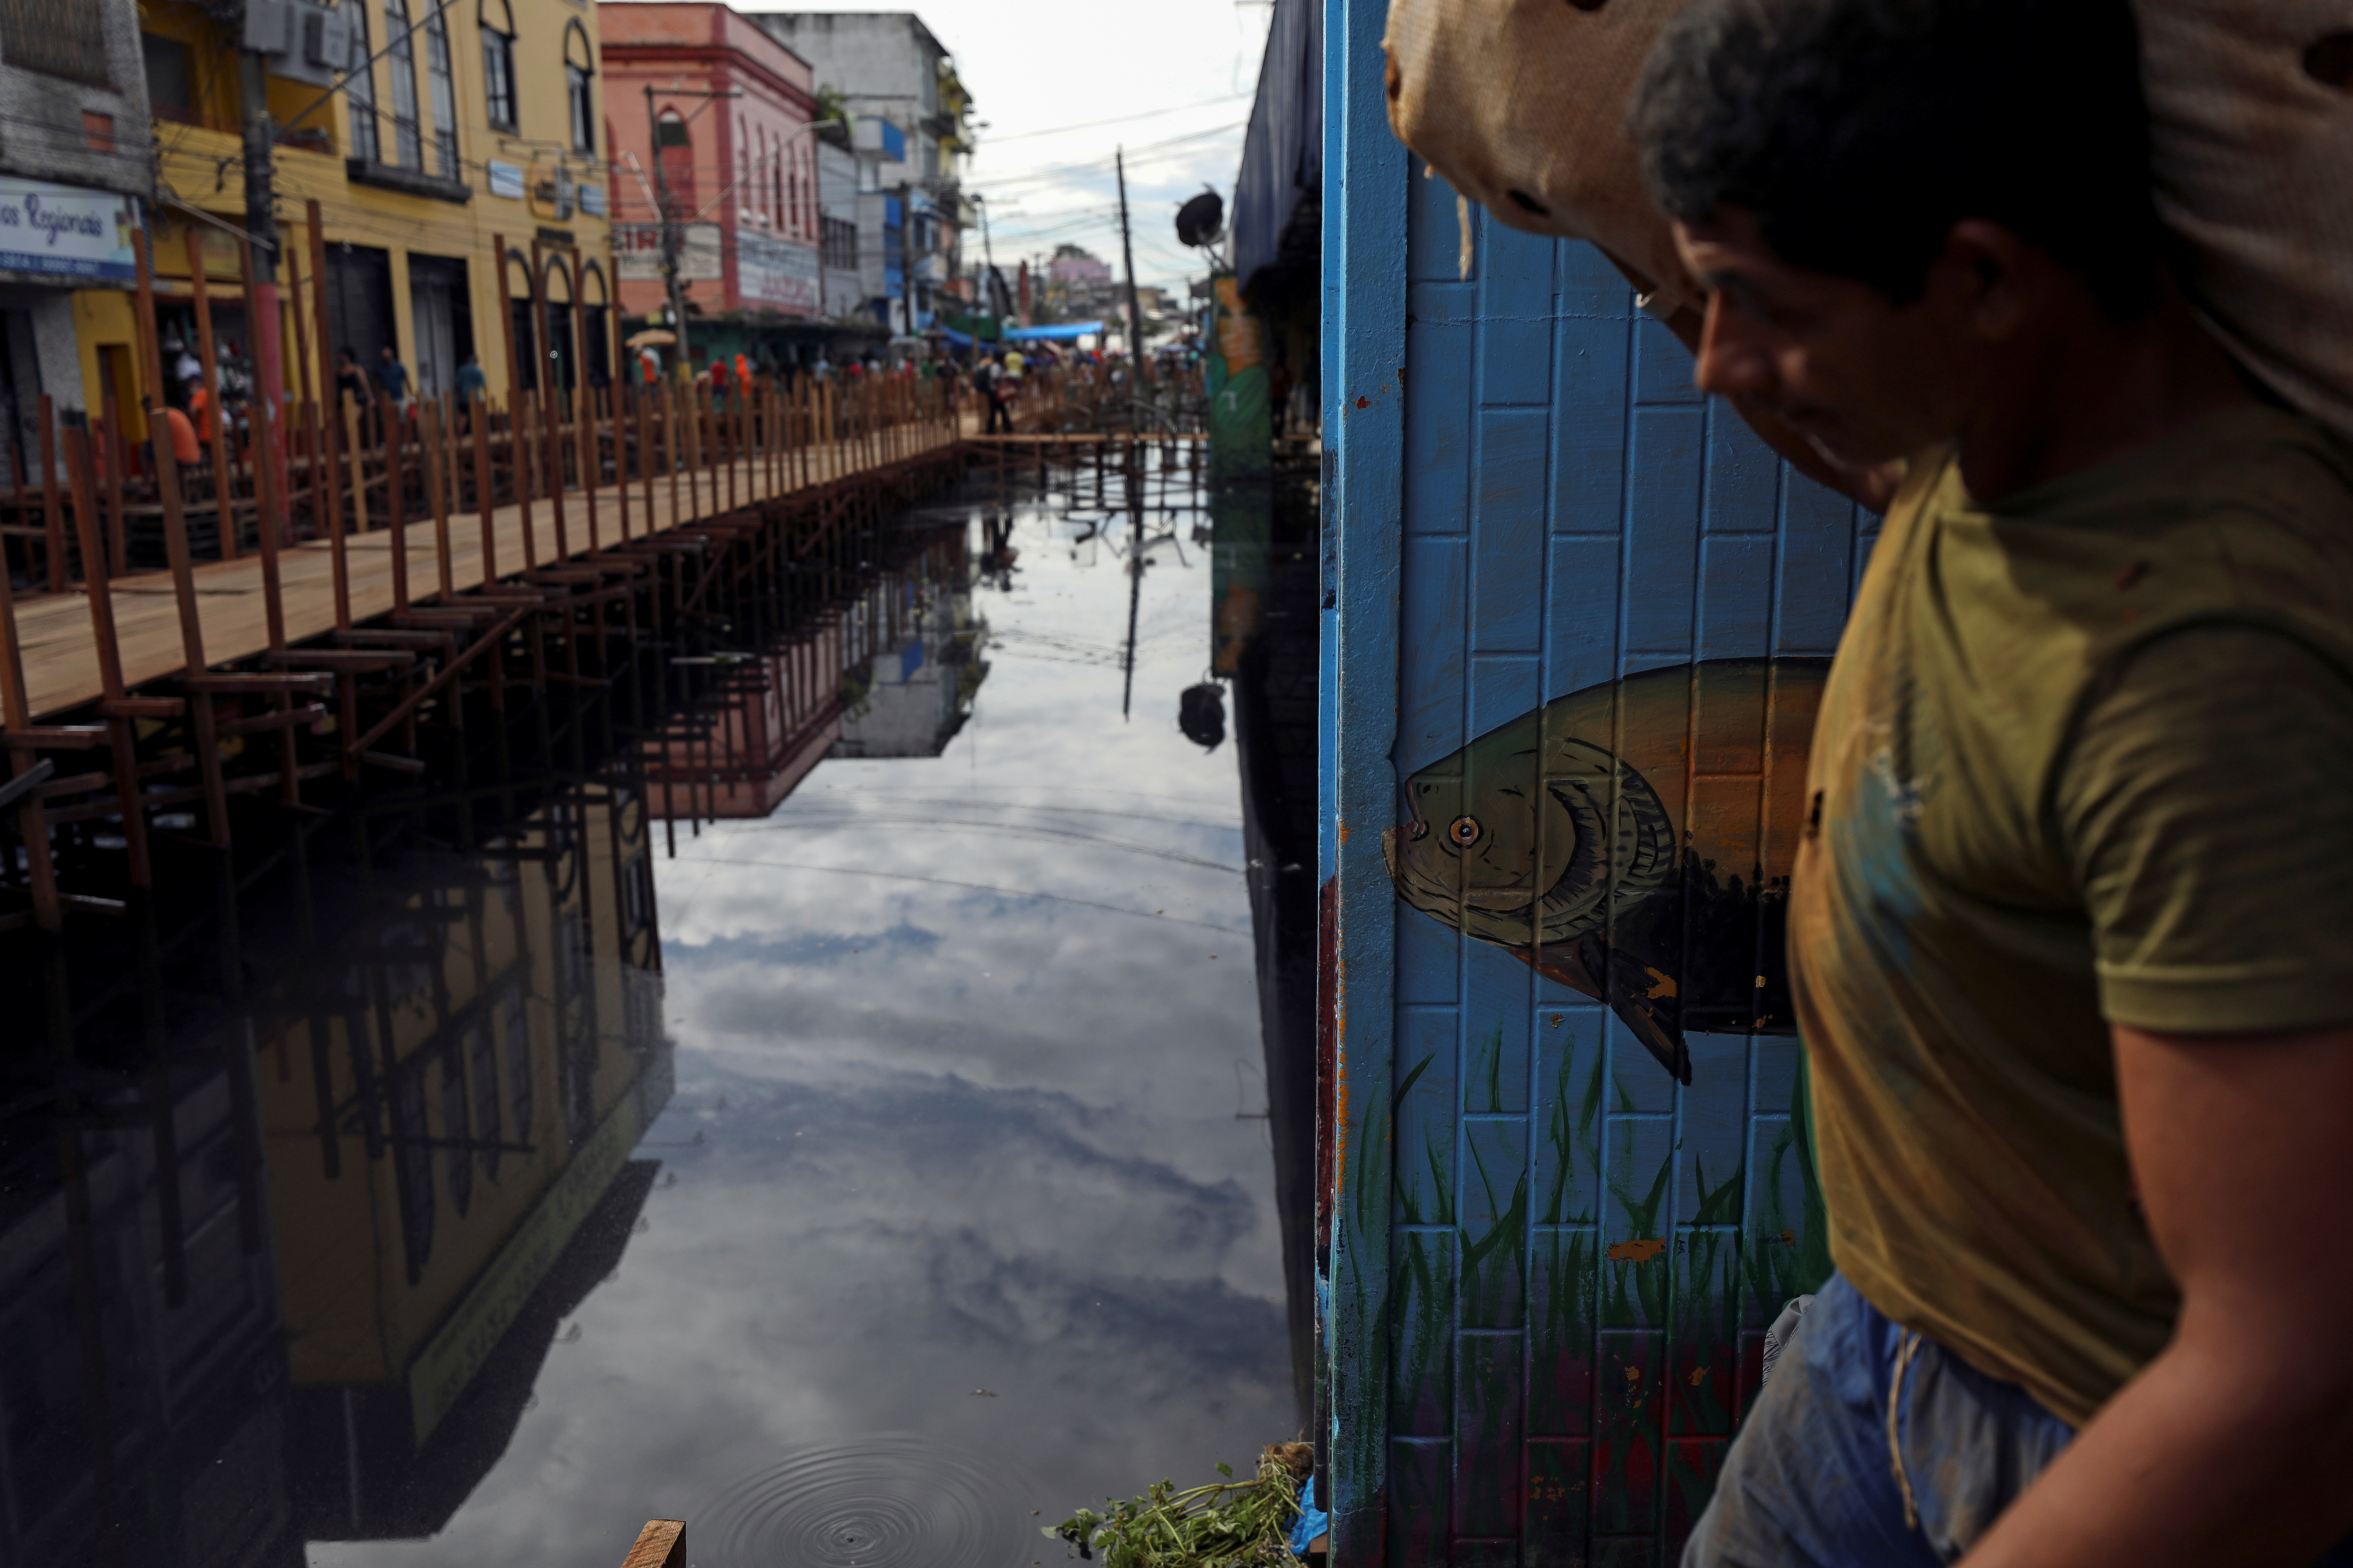 A man carries a bag as he walks over wooden walkways installed by the city hall over a street flooded by waters from the Negro river in downtown of Manaus, in Amazonas State, Brazil May 17, 2021. REUTERS/Bruno Kelly